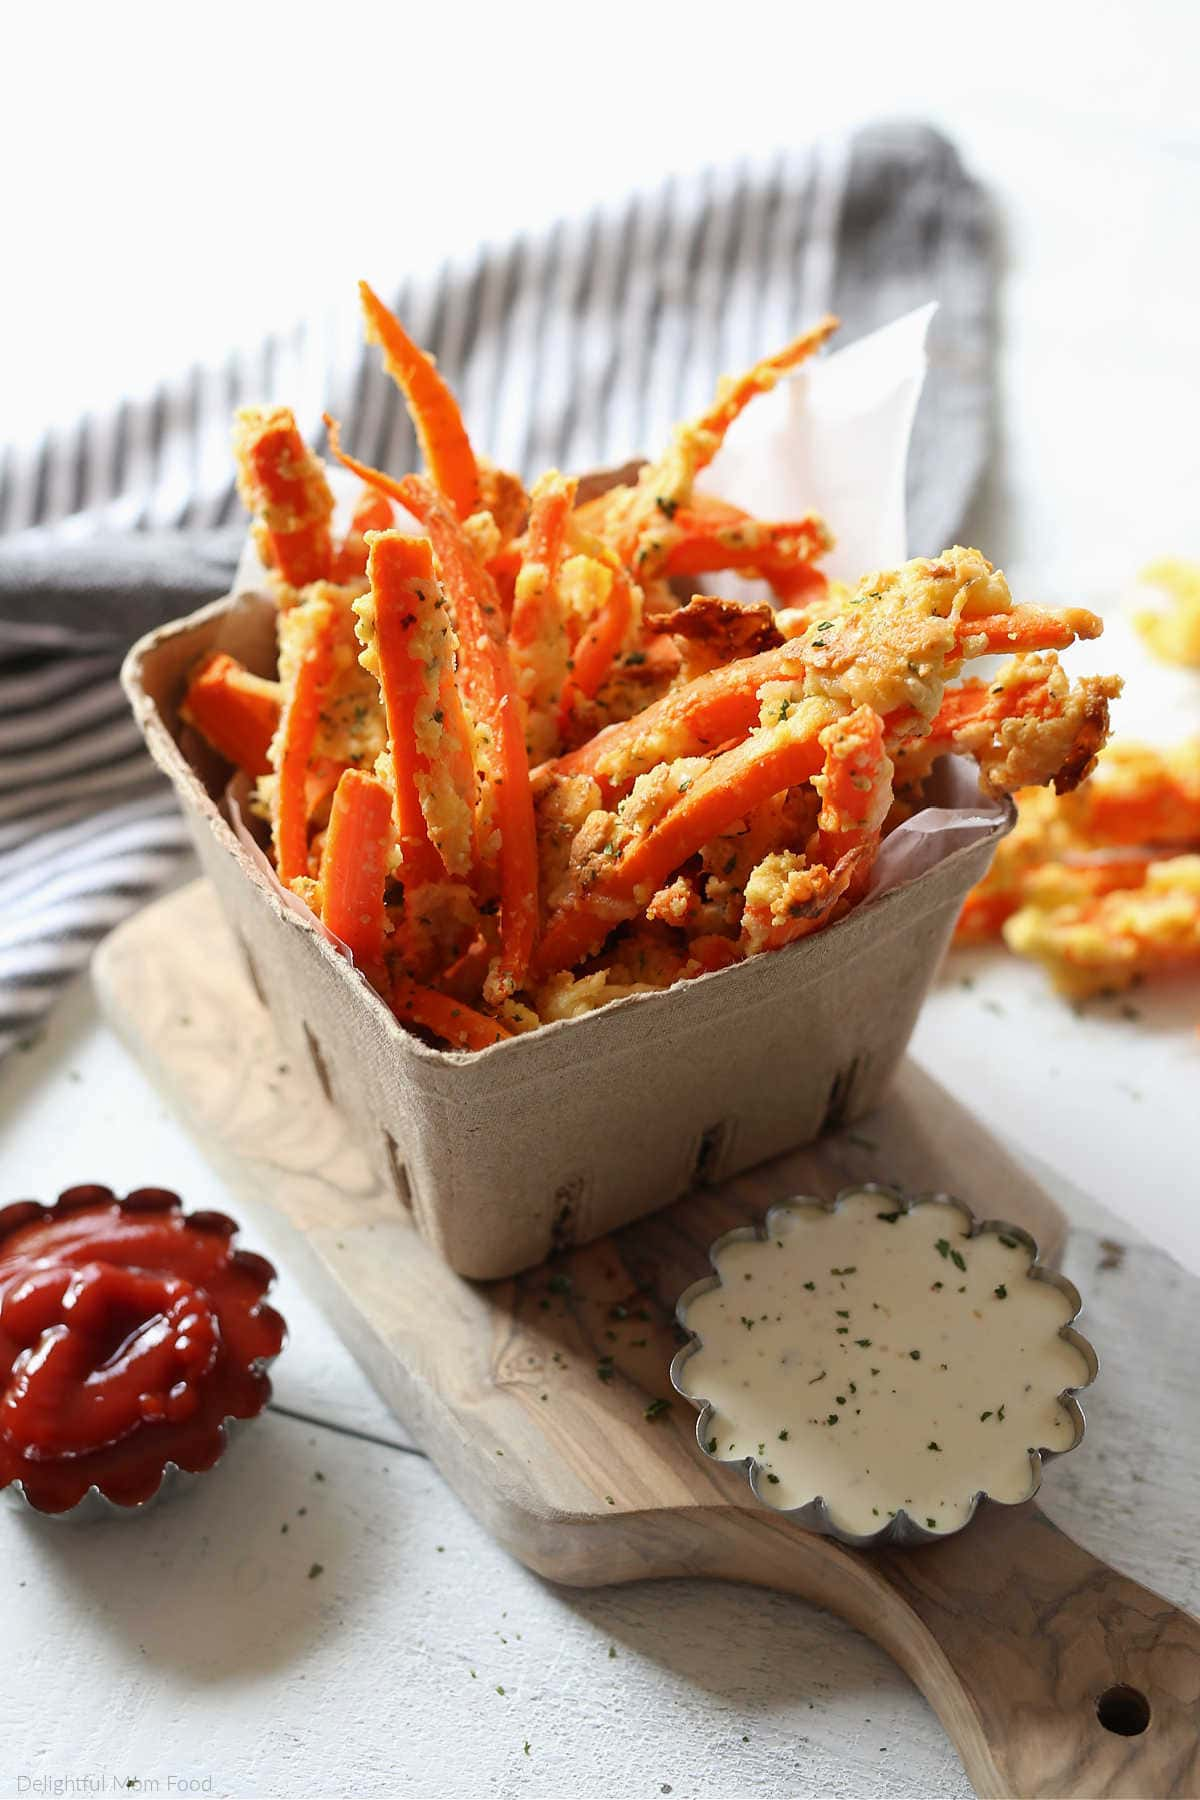 Carrot Fries in a cardboard cup on a cutting board served with ketchup and dressing